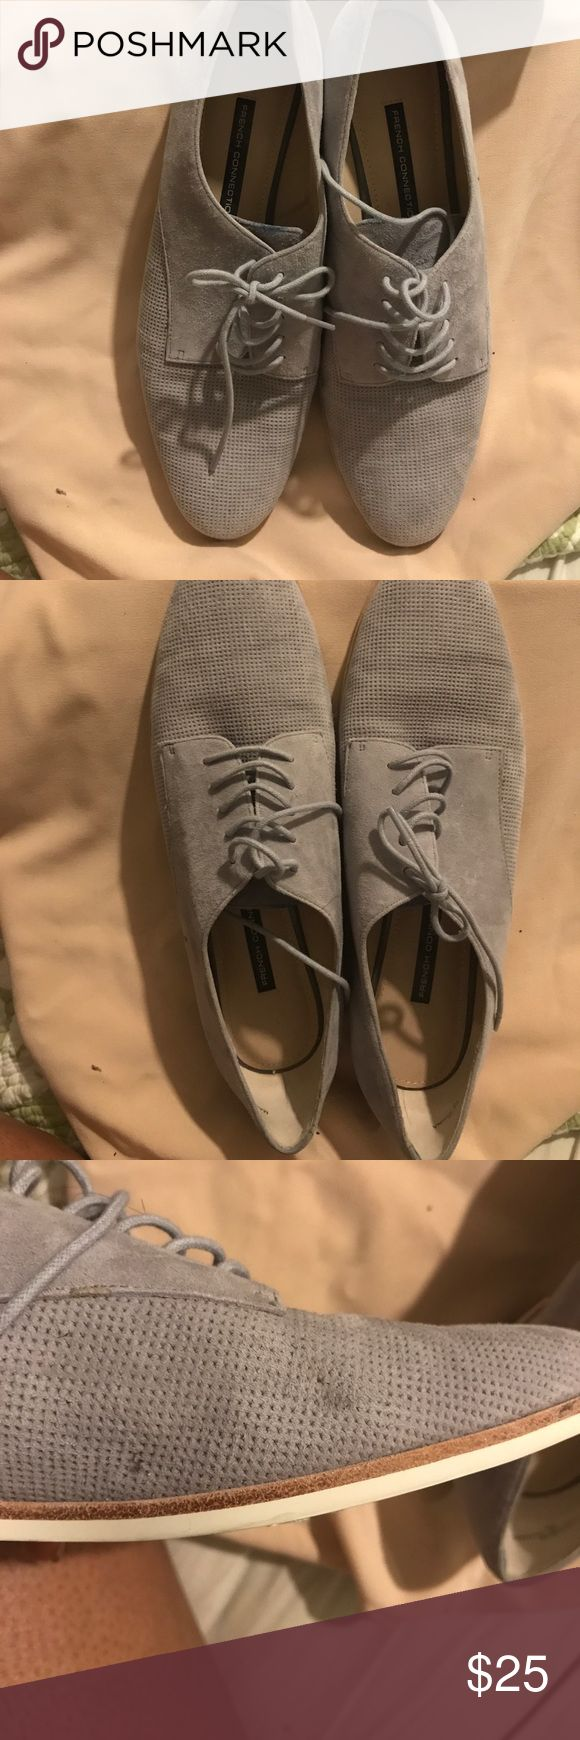 Grey oxford Grey Oxfords perforated toe cute for the summer.  A few minor scuffs from wear shown in the pictures French Connection Shoes Flats & Loafers